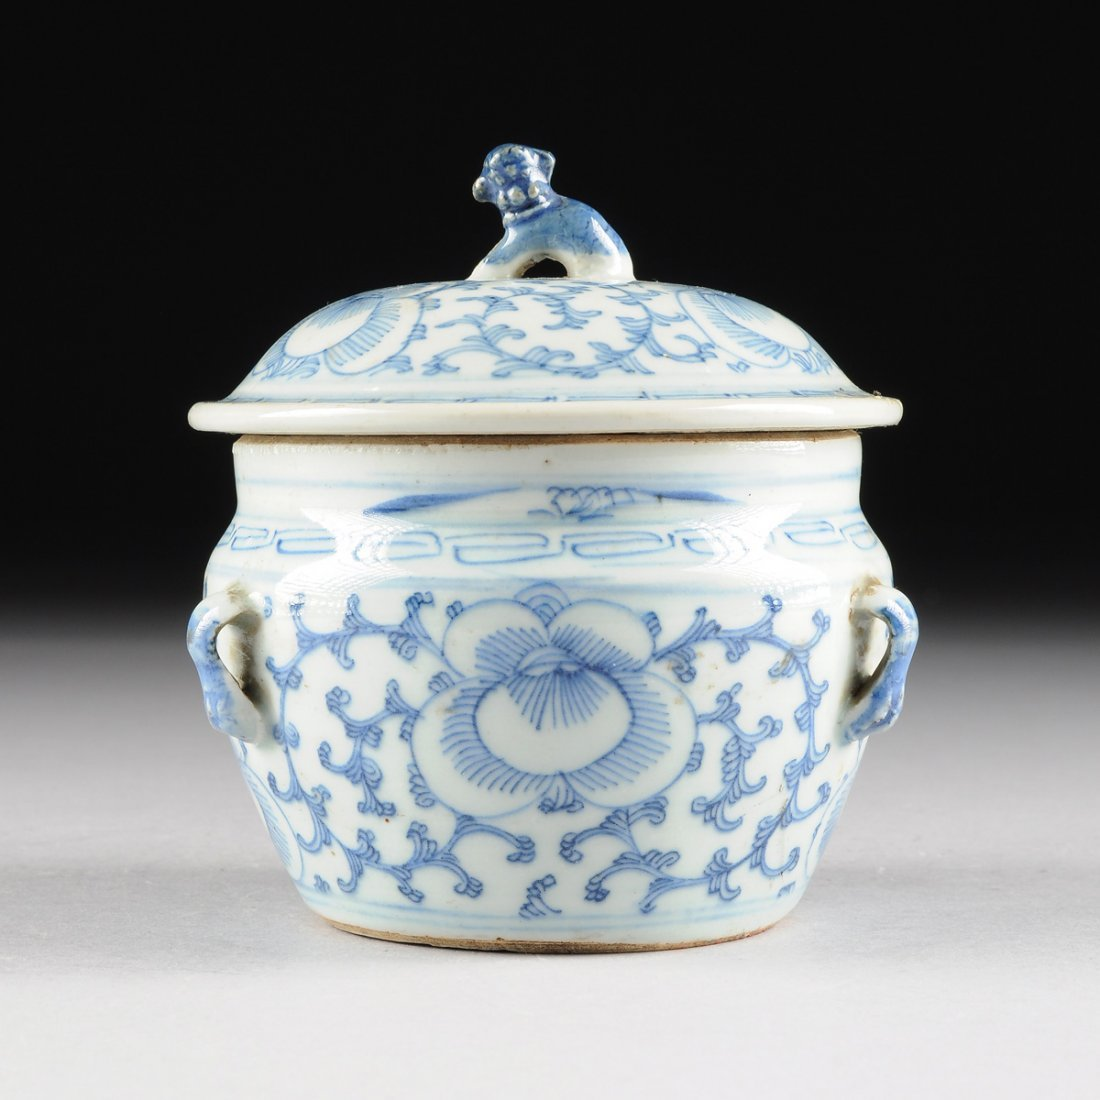 A DIMINUTIVE CHINESE BLUE AND WHITE PORCELAIN LIDDED